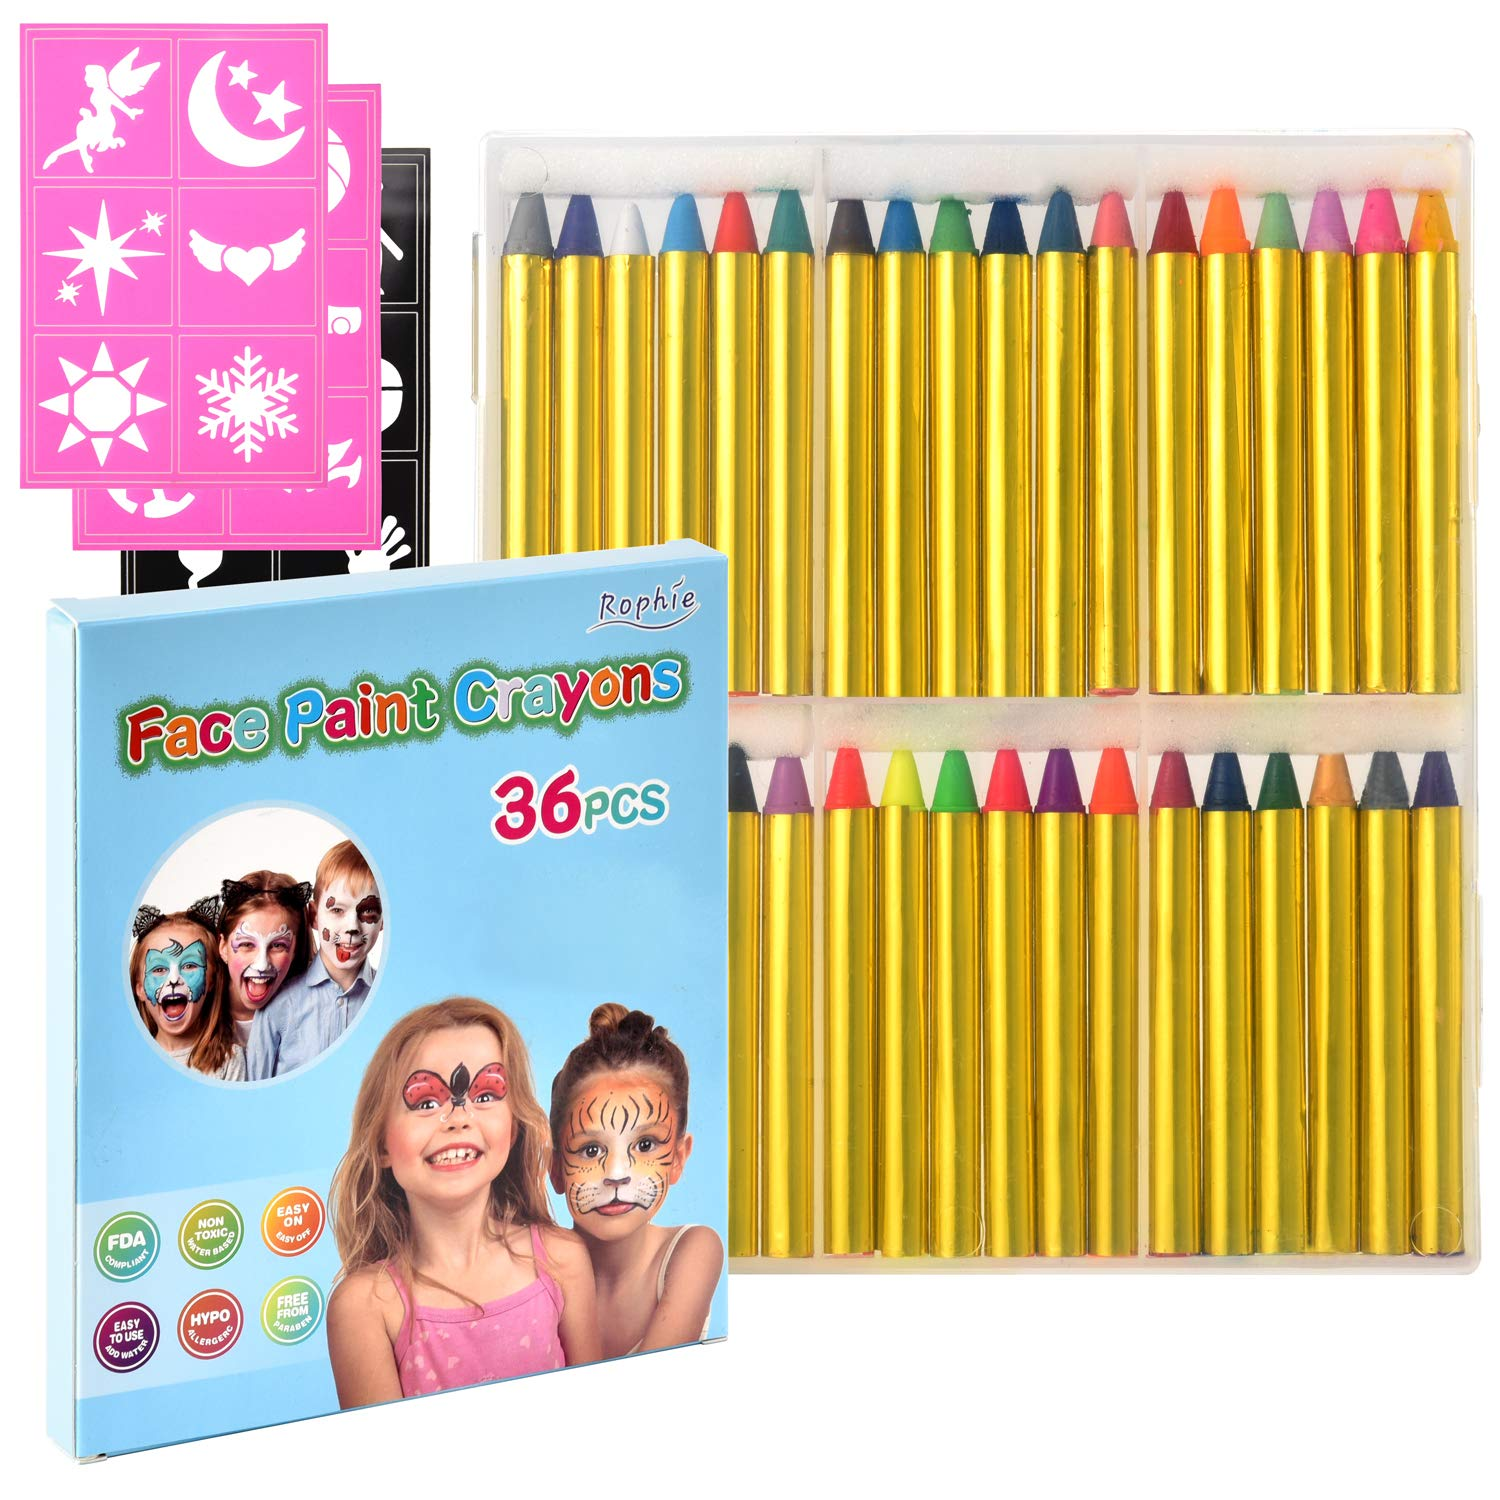 """Zecti Face Paint Crayons for Kids, 36 Jumbo 3"""" Face & Body Painting Makeup Crayons, Safe for Sensitive Skin, 12 Metallic & 24 Classic Colors, Painting Crayons Stick for Party Favors Halloween Birthday"""